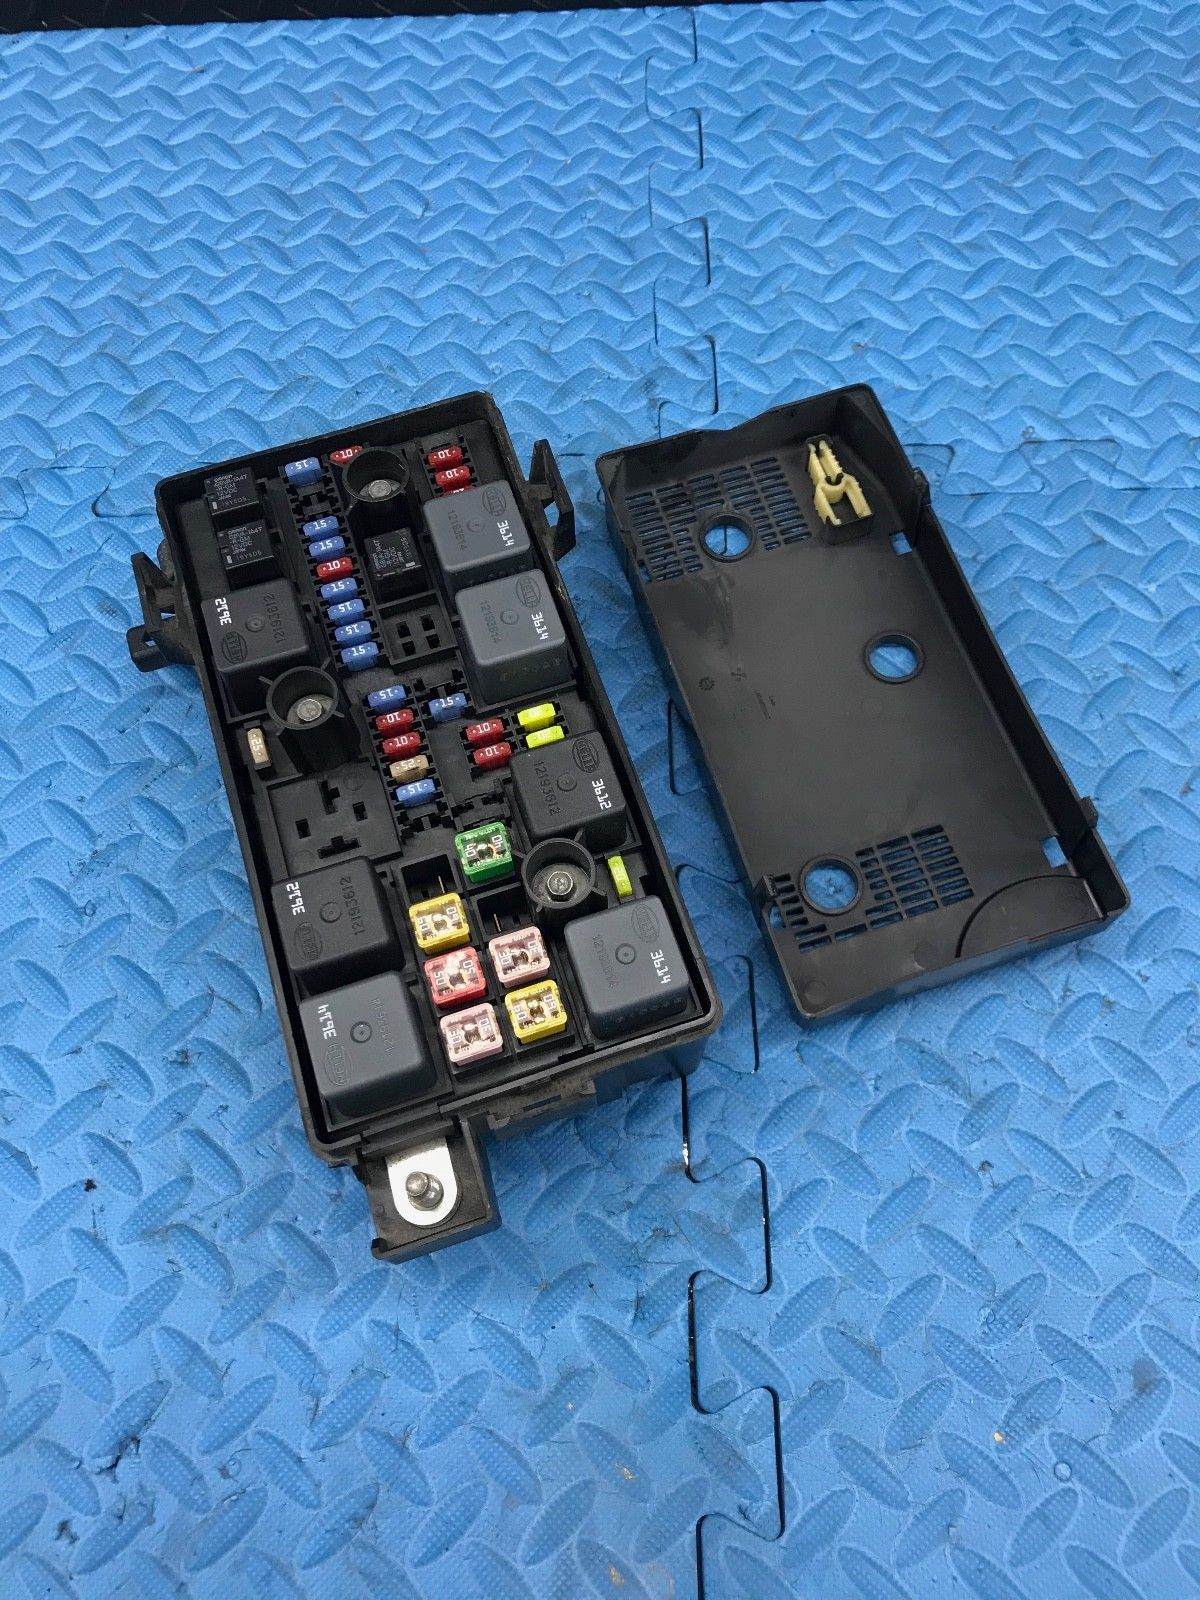 Buick Lucerne Fuse Box Replacement Wiring Library 2008 Block Rh Justparts Com 2007 Problems